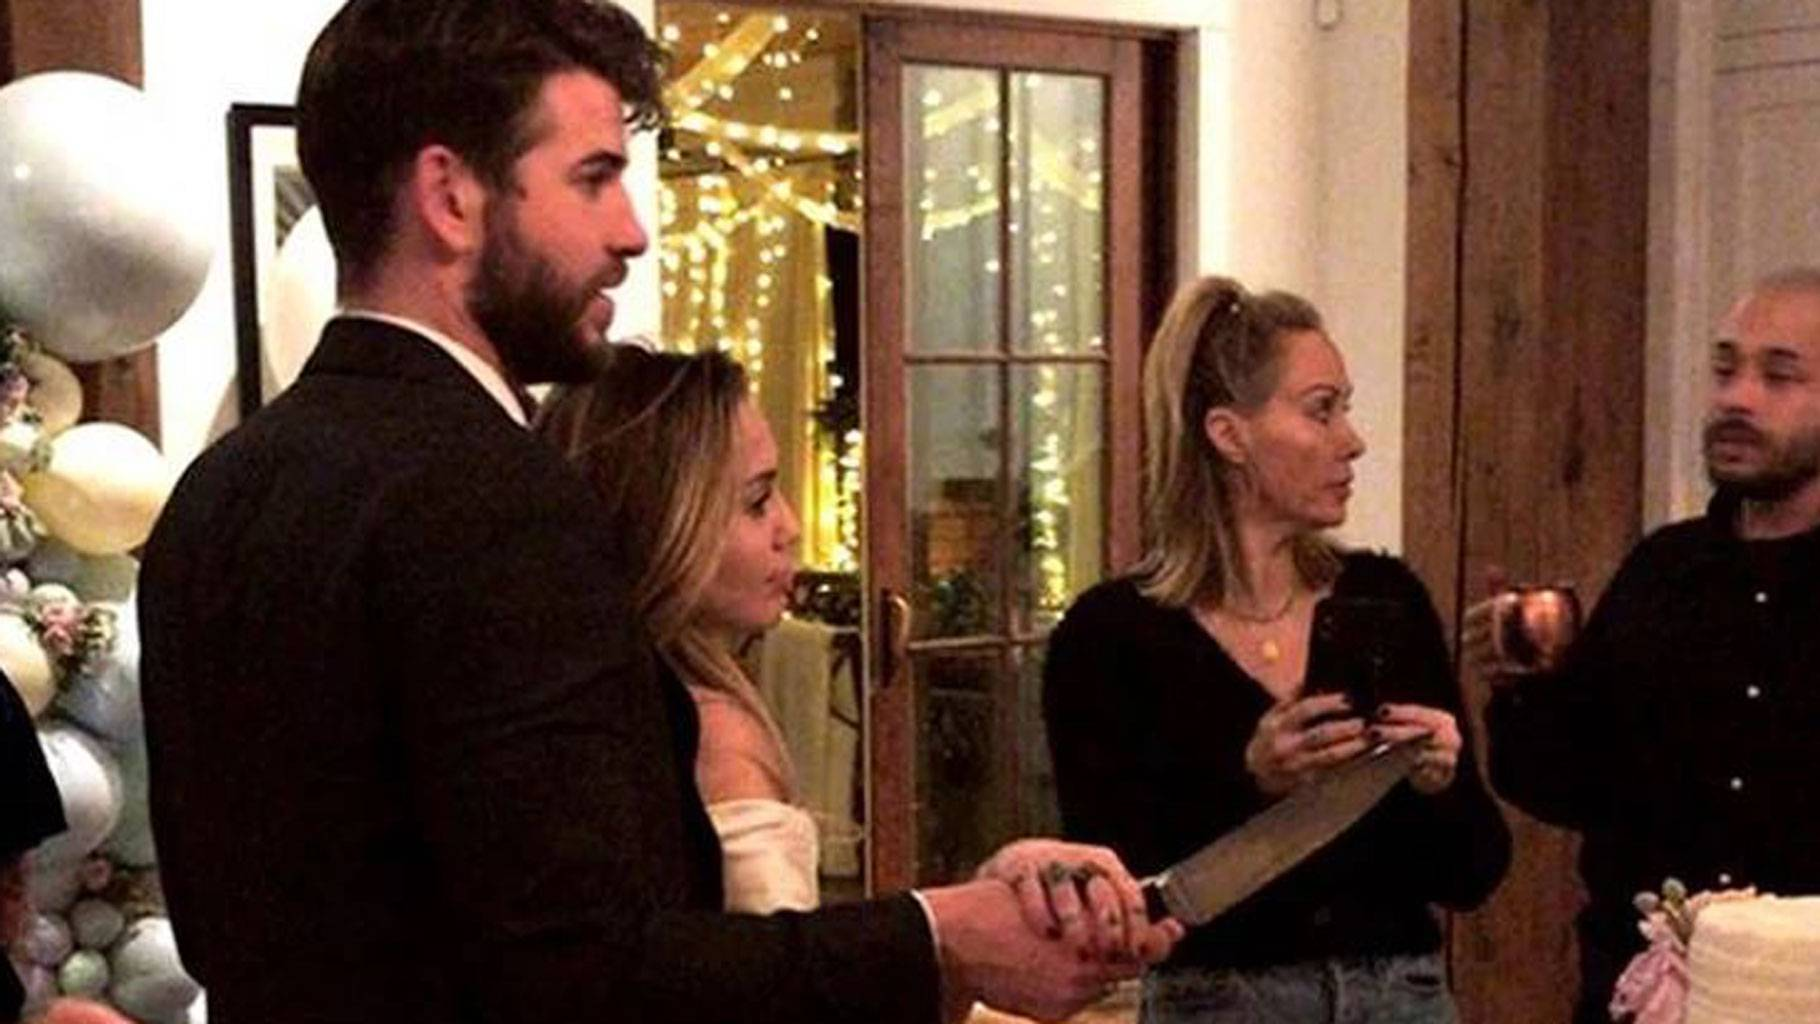 Miley Cyrus And Liam Hemsworth Just Had A Quiet Wedding Yes It S A Thing Now